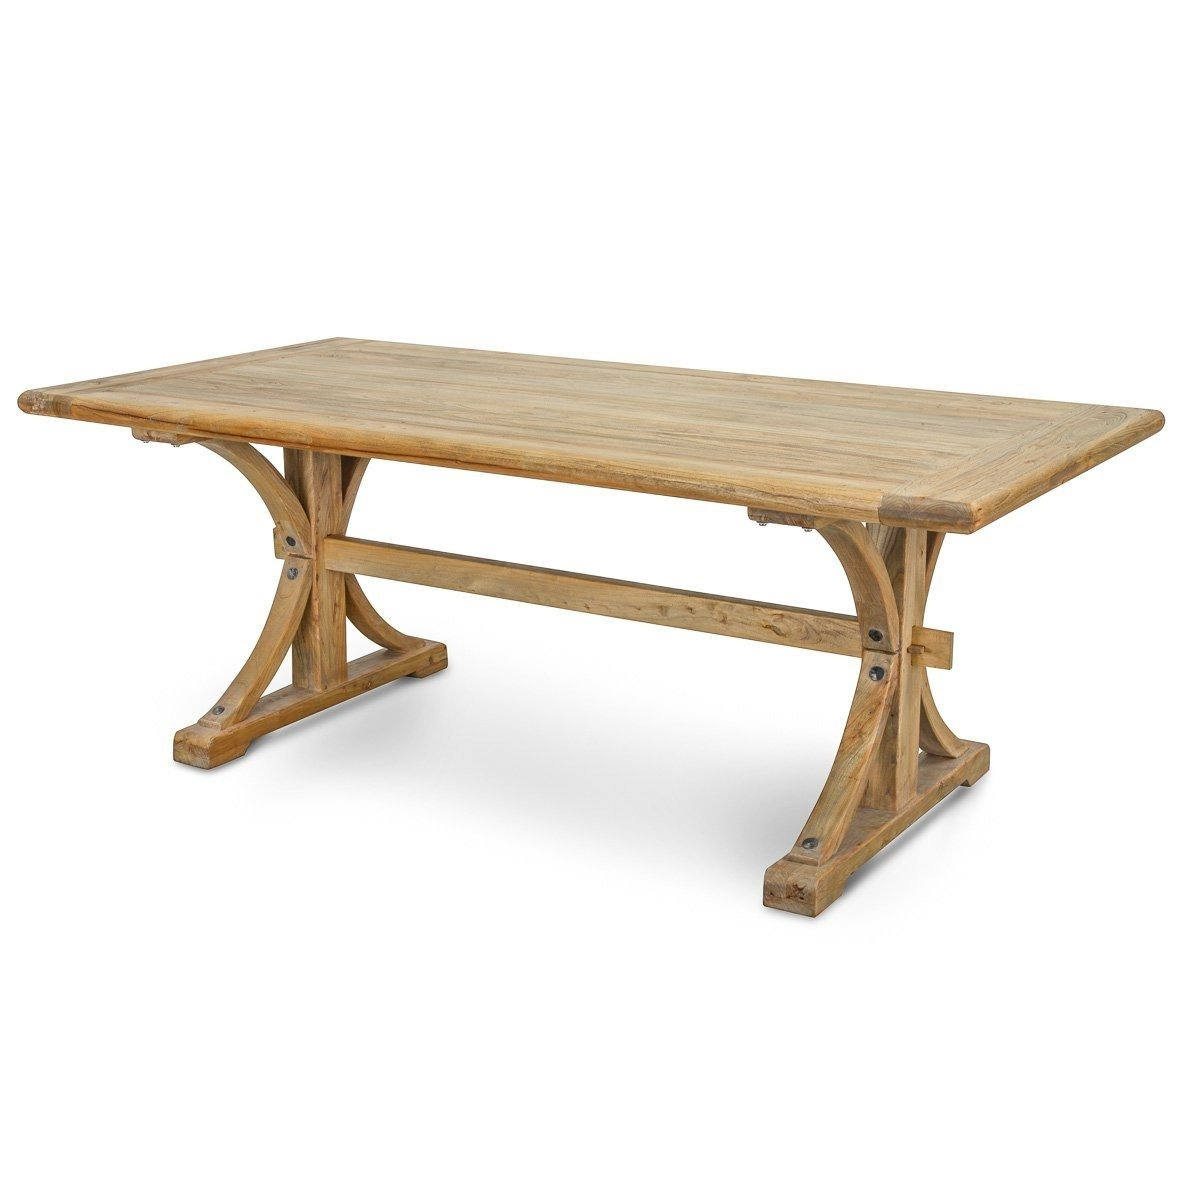 6a3d6b847f73 MARCUS RECLAIMED ELM WOOD DINING TABLE 1.98M - NATURAL | Buy Dining ...